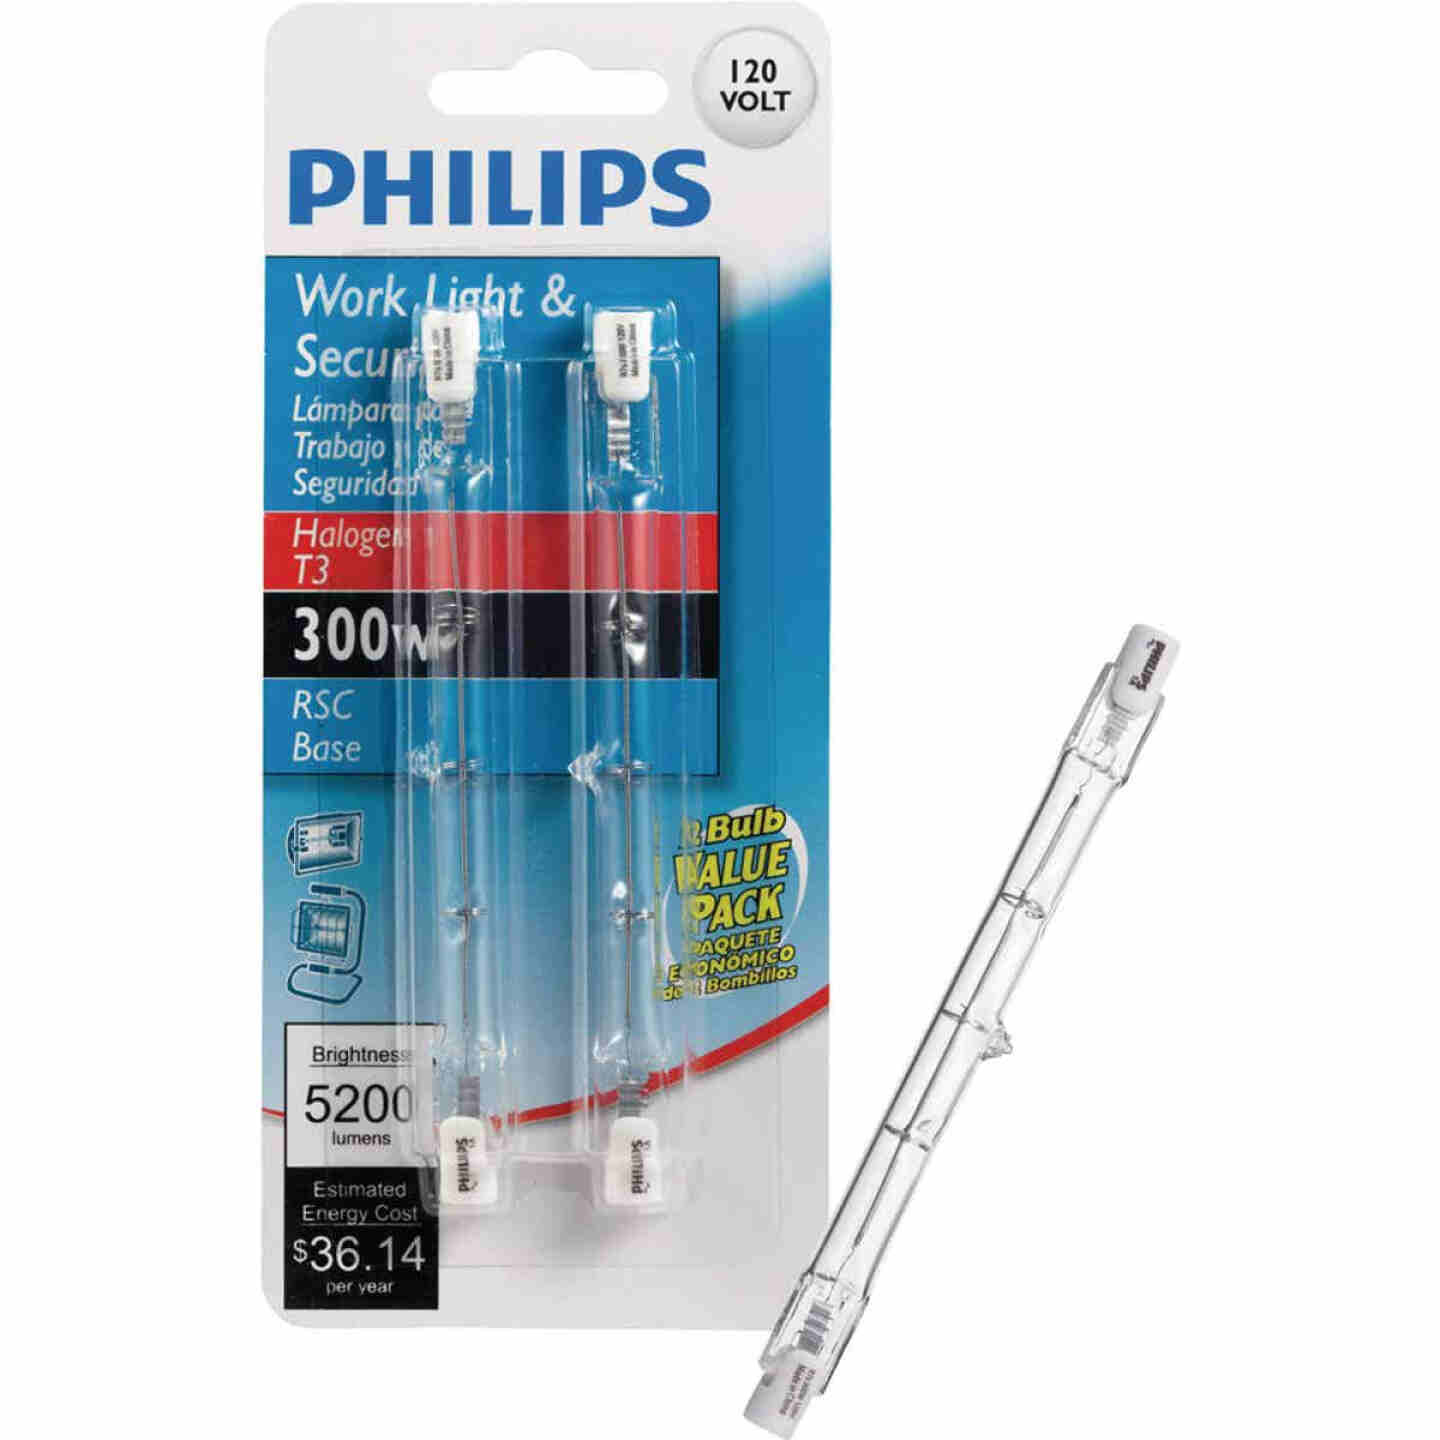 Philips 300W 120V Clear RSC Base T3 Work Light Bulb (2-Pack) Image 1